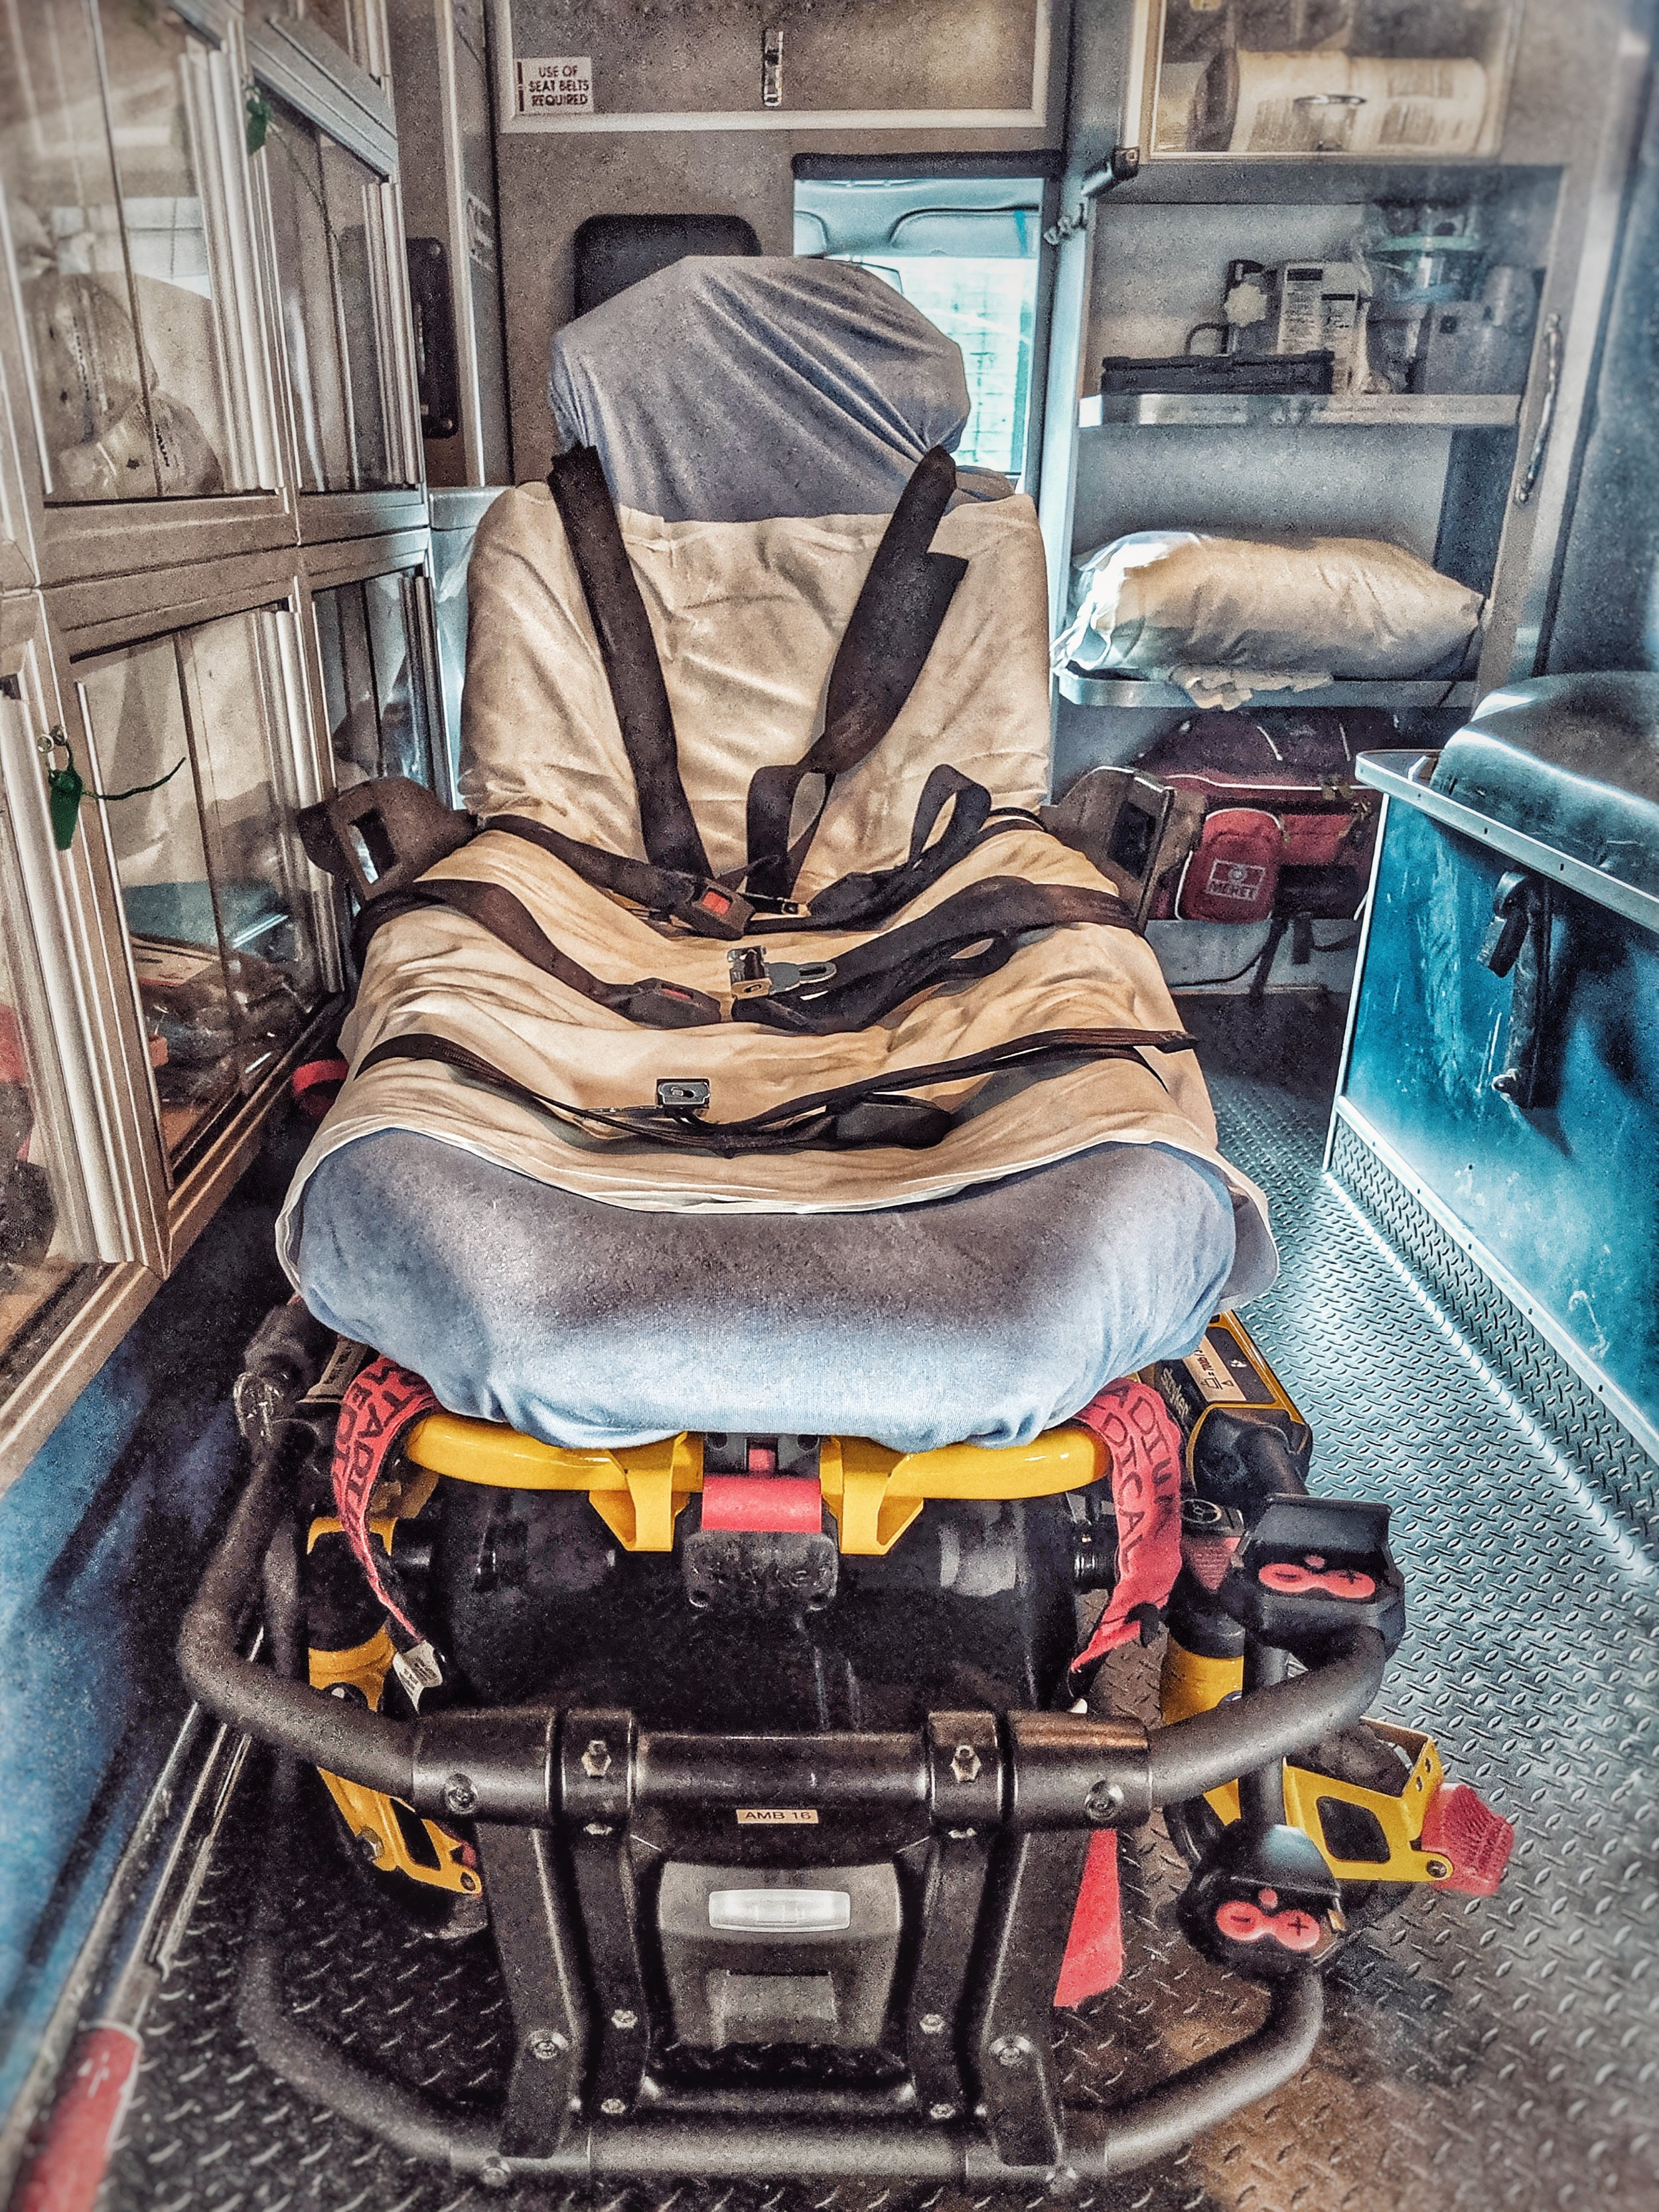 Stryker Power-PRO XT Cots - Cots for safe patient movement, loading, and unloading, as well as employee safety.